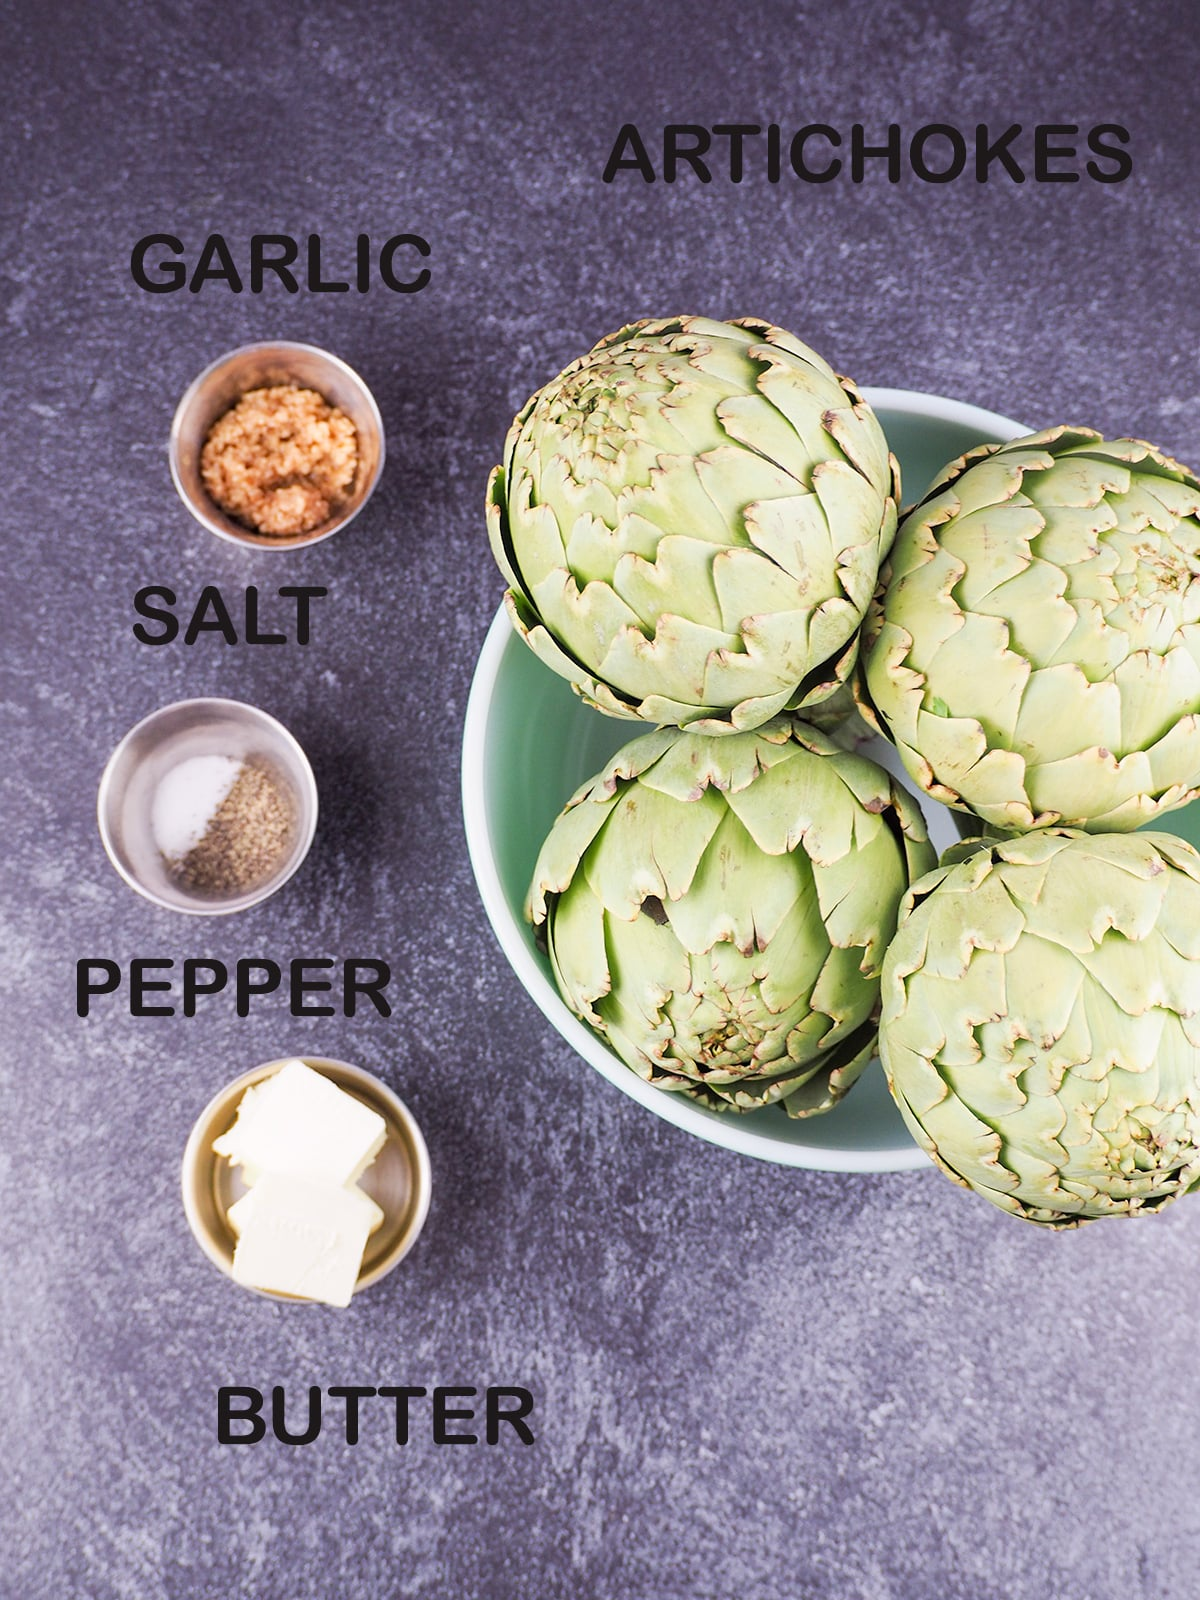 ingredients for artichokes